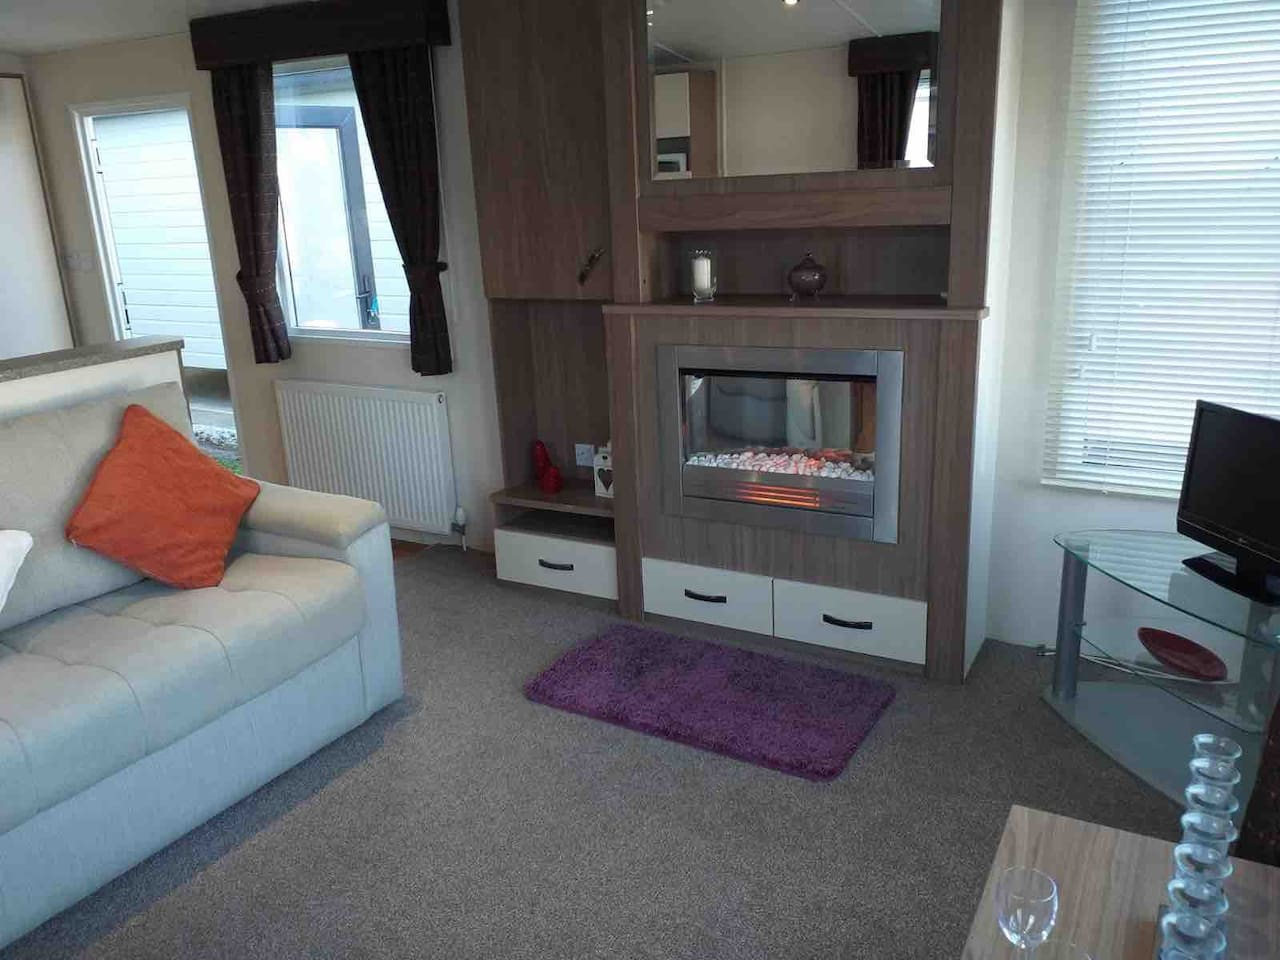 Living Room, Lovely warm gas fire and gas central heating. TV and wonderful views. Five Minutes from the sea. Power shower gorgeous internals Great for after a day out onto beach walking .  Double bed two single beds comfortable holiday home